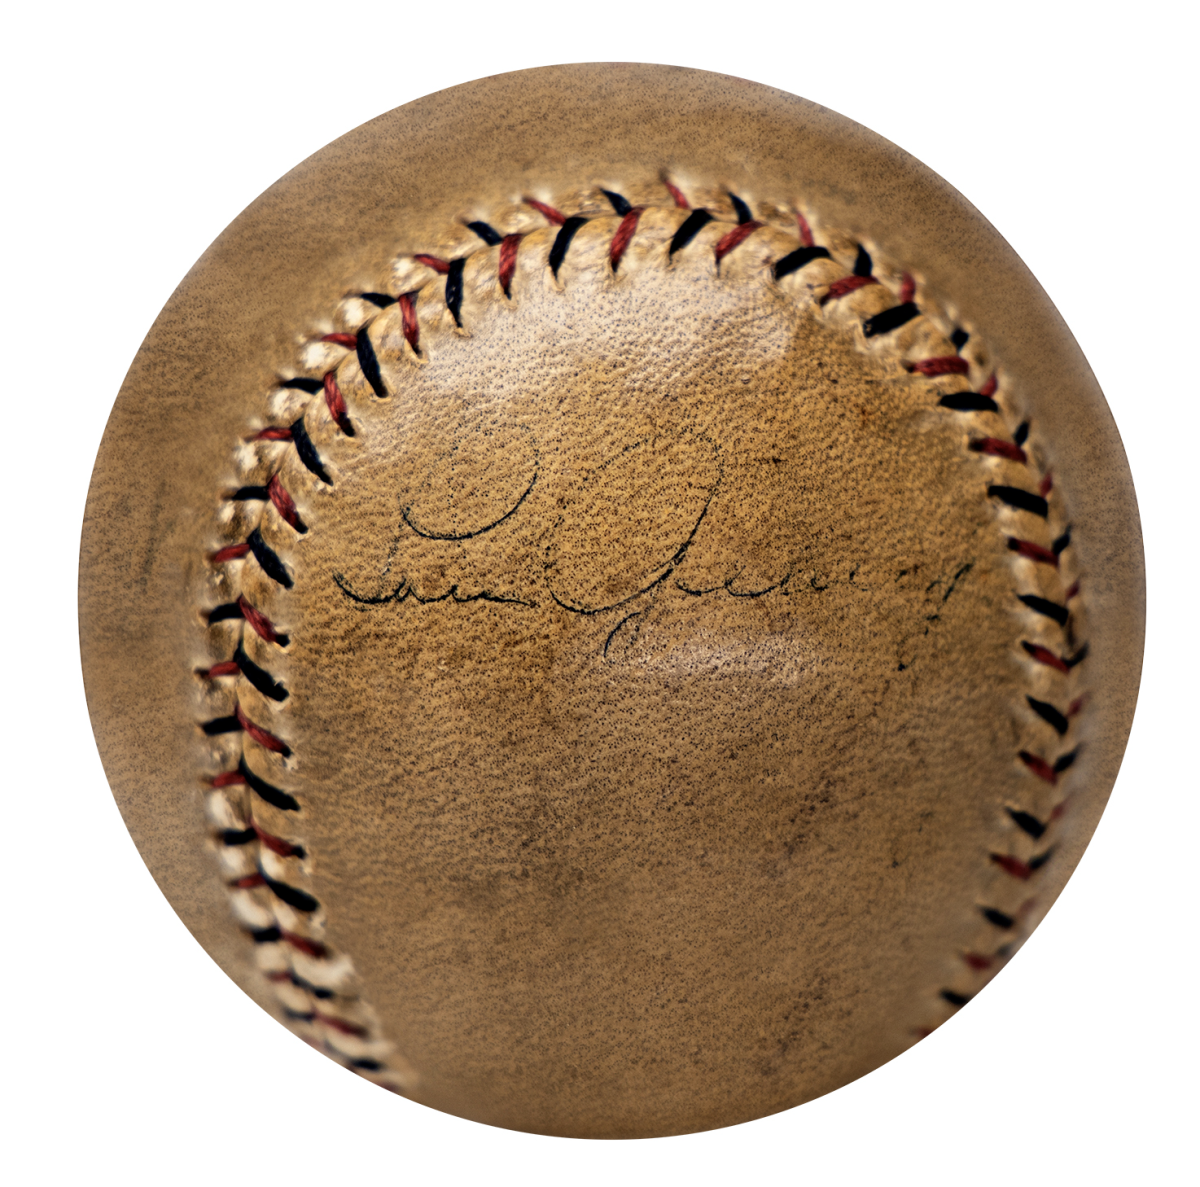 Baseball signed by Lou Gehrig, Babe Ruth and Christy Mathewson up for auction at Gotta Have Rock and Roll.